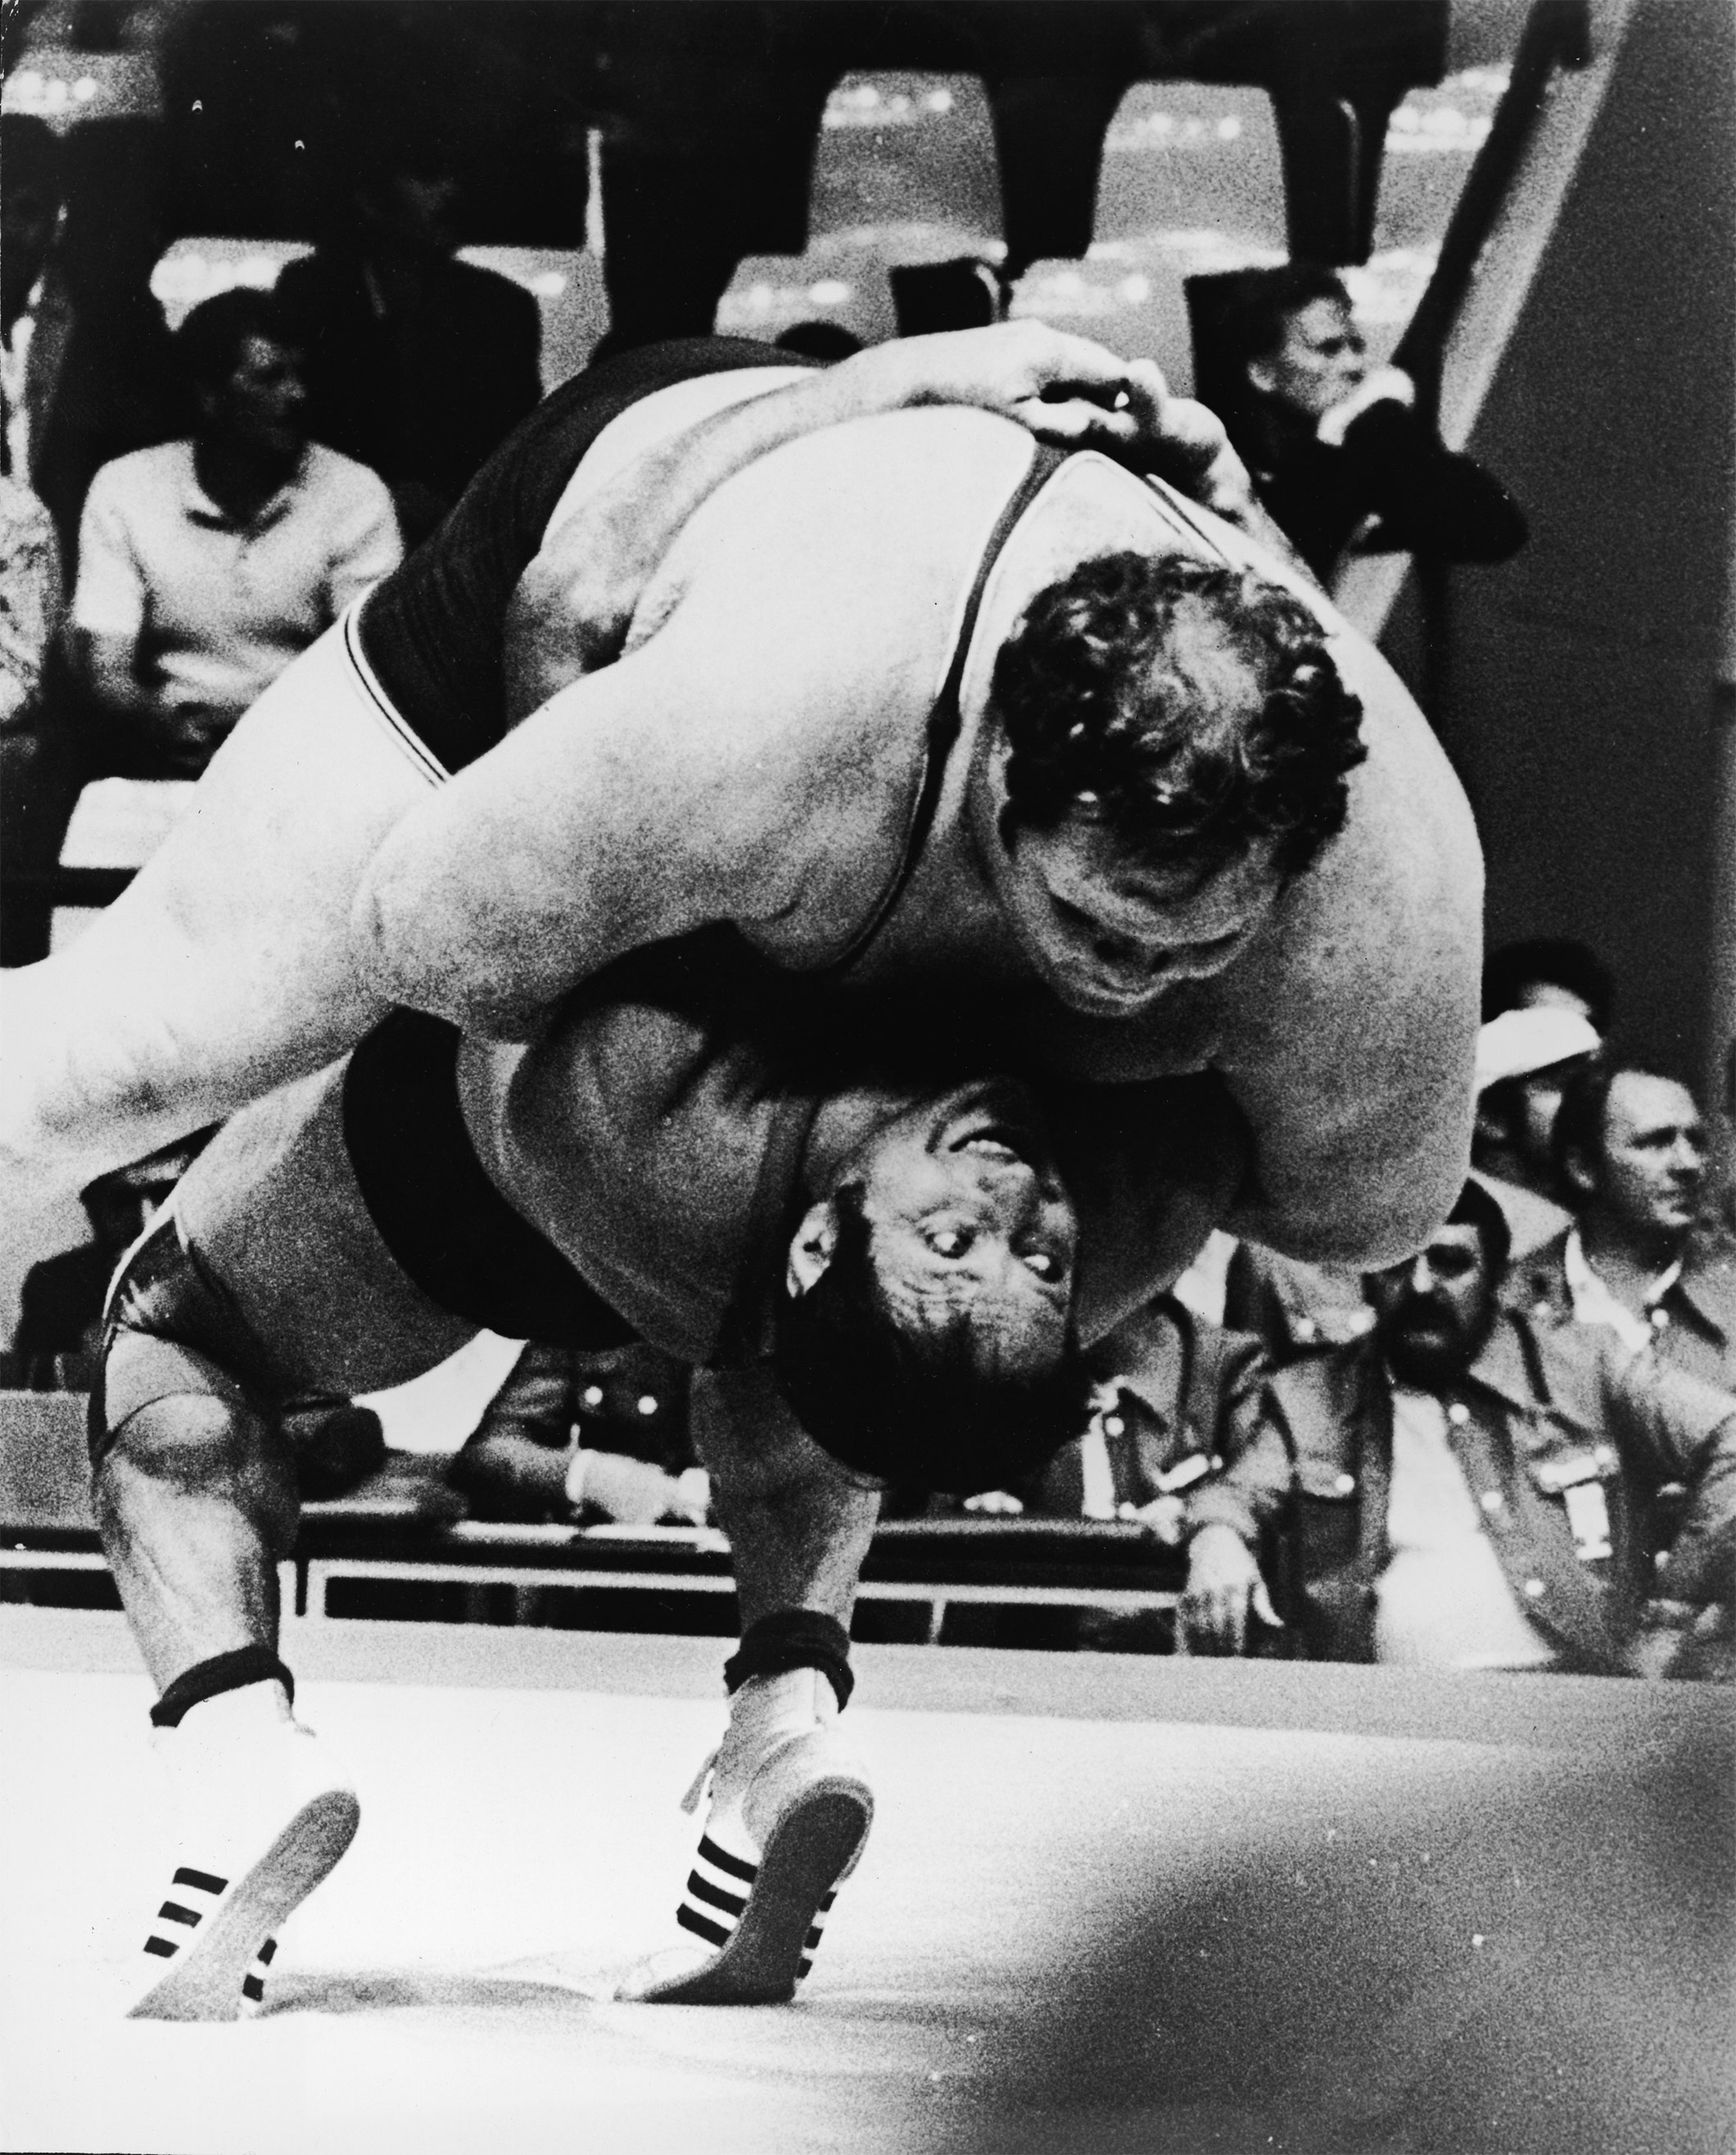 German heavyweight wrestler Wilfried Dietrich throws 400 pound American opponent Chris Taylor on October 31, at the 1972 Munich Olympic Games. This photograph won recognition from a panel of international photographers as the best taken at the Munich games.